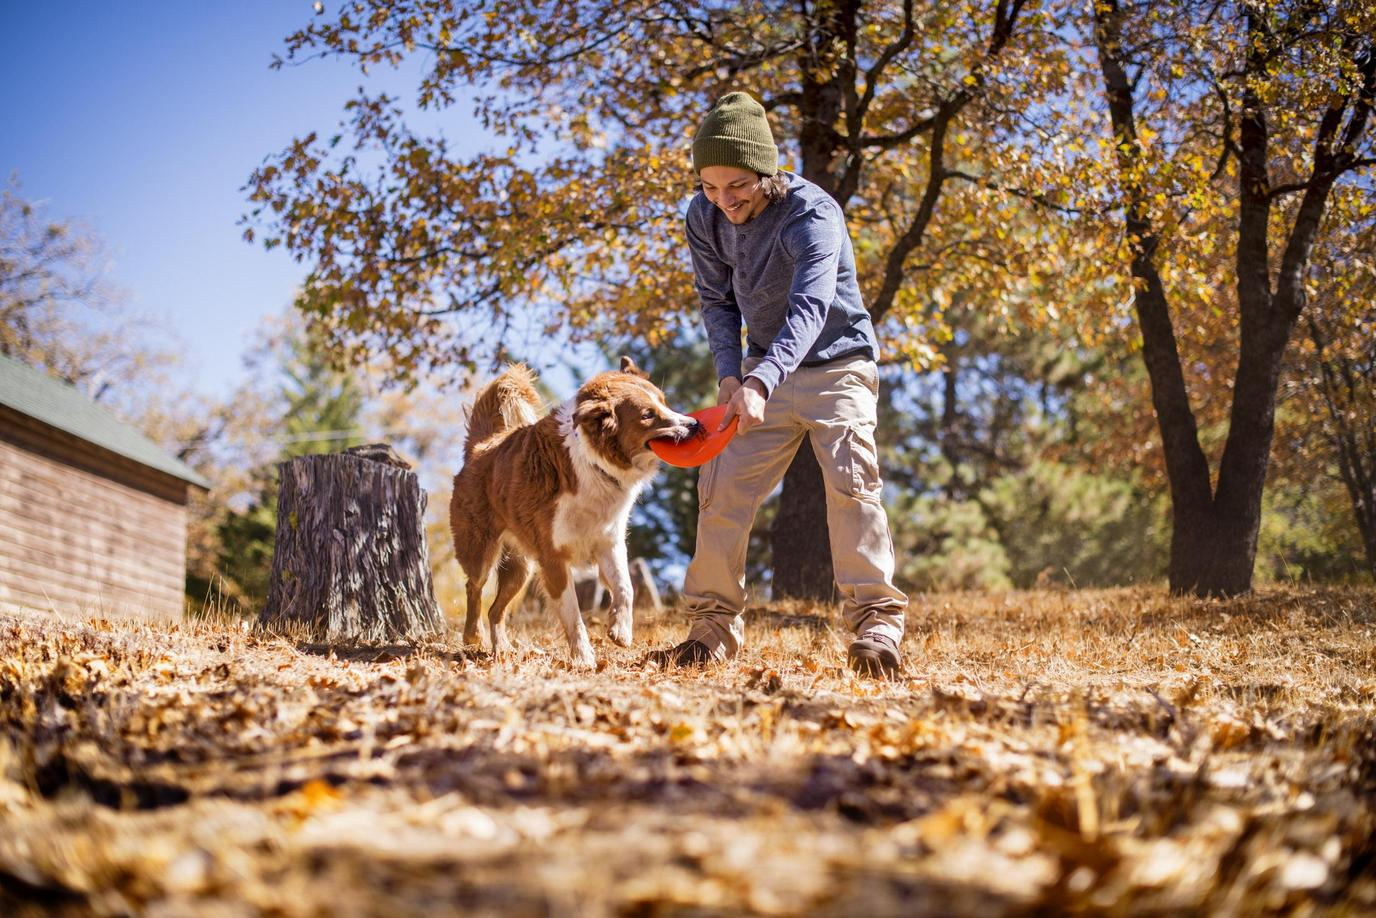 A Man Plays Frisbee With His Healthy Dog in Fall.